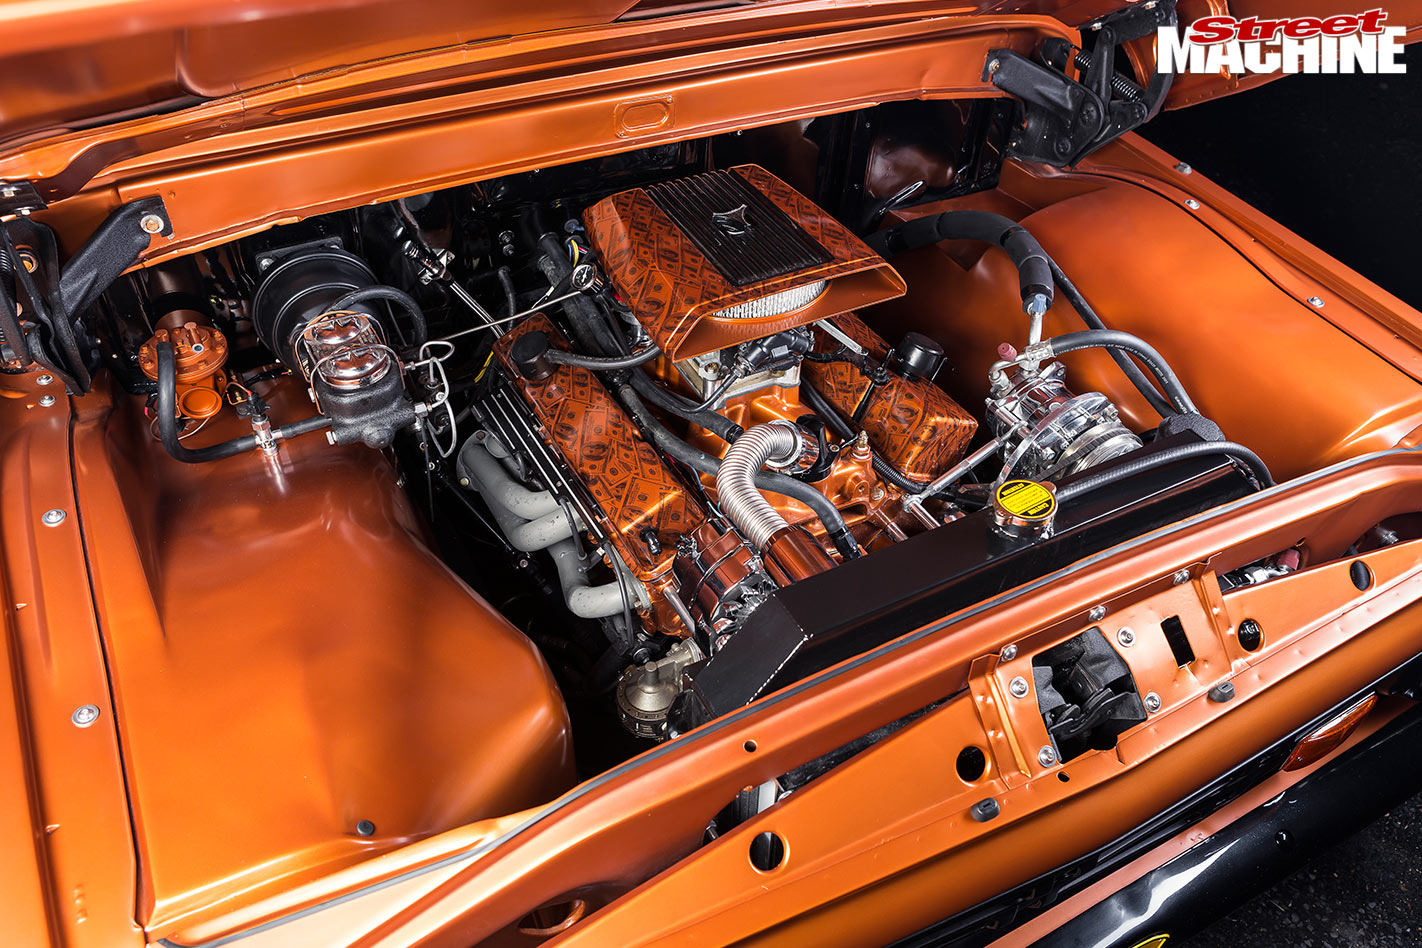 Ford F100 engine bay